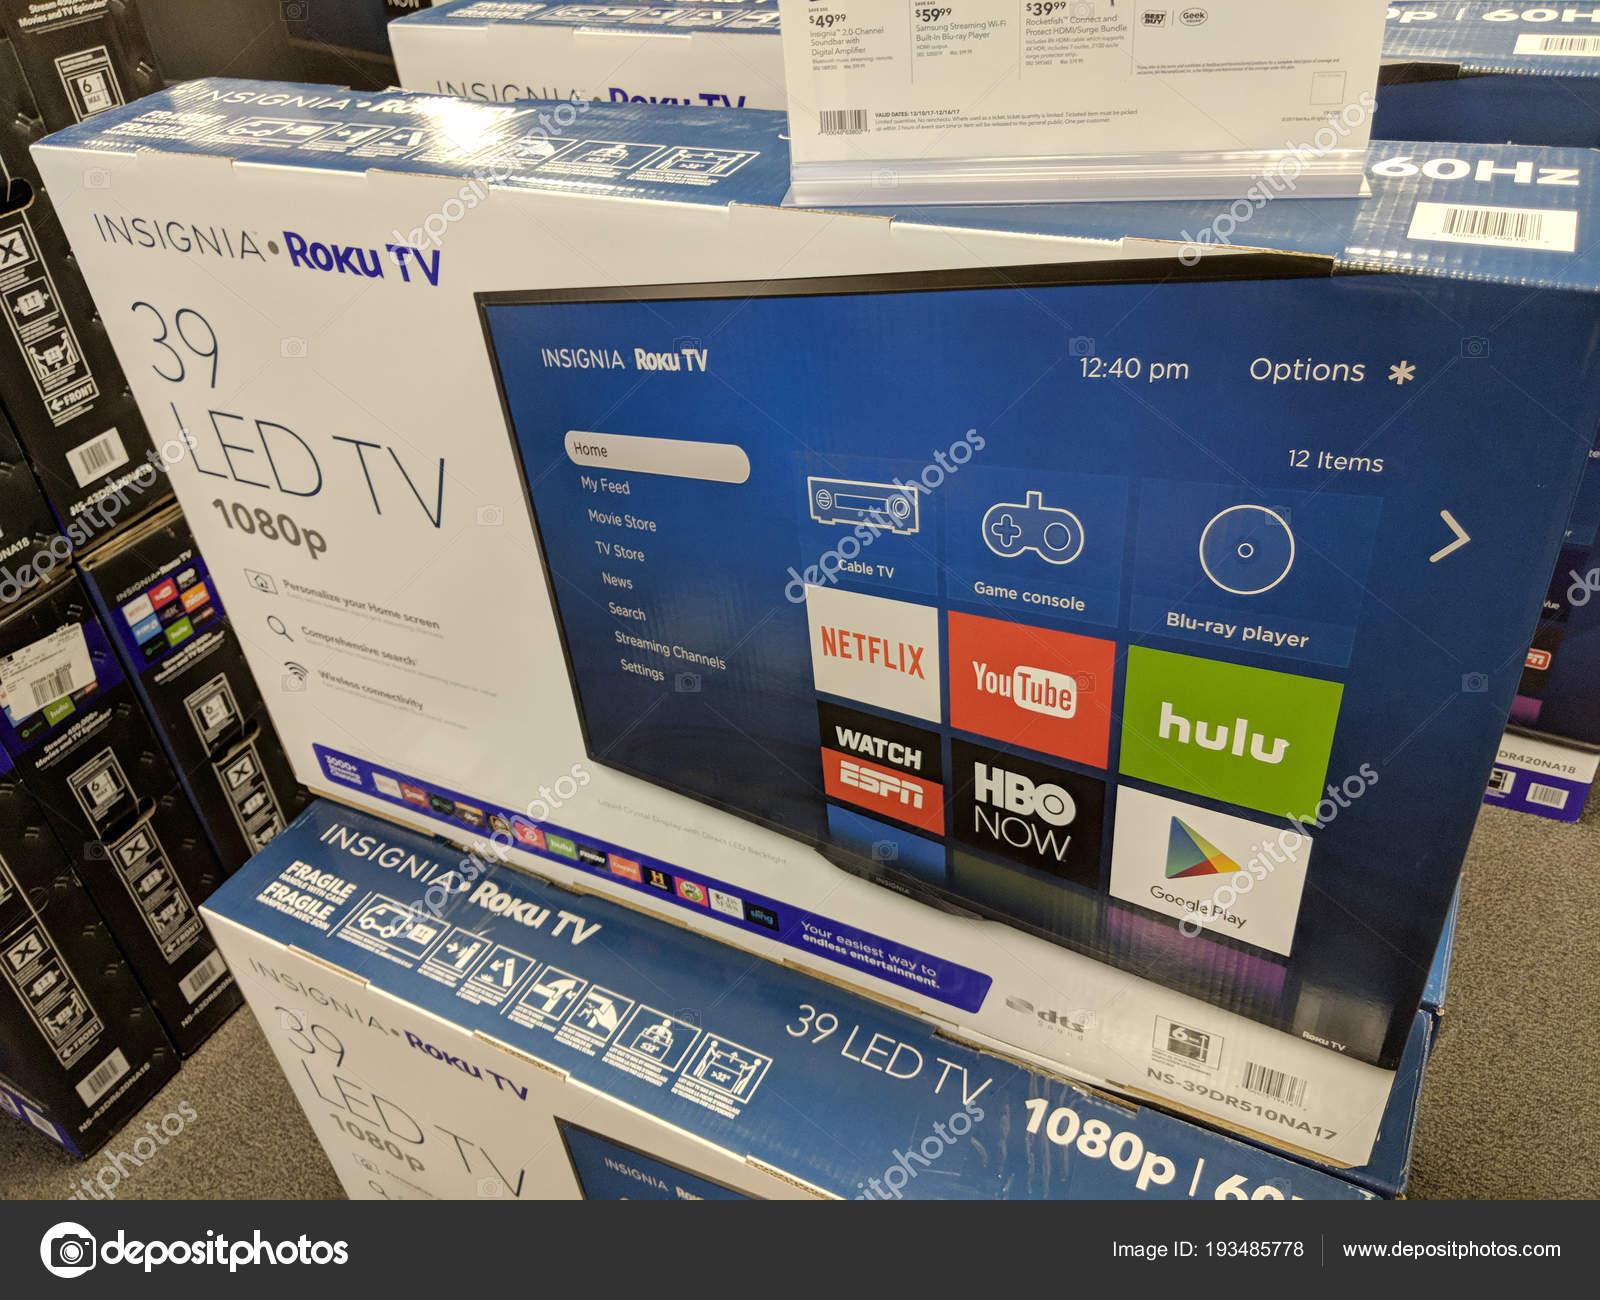 Insignia Roku TV for sale at Best Buy – Stock Editorial